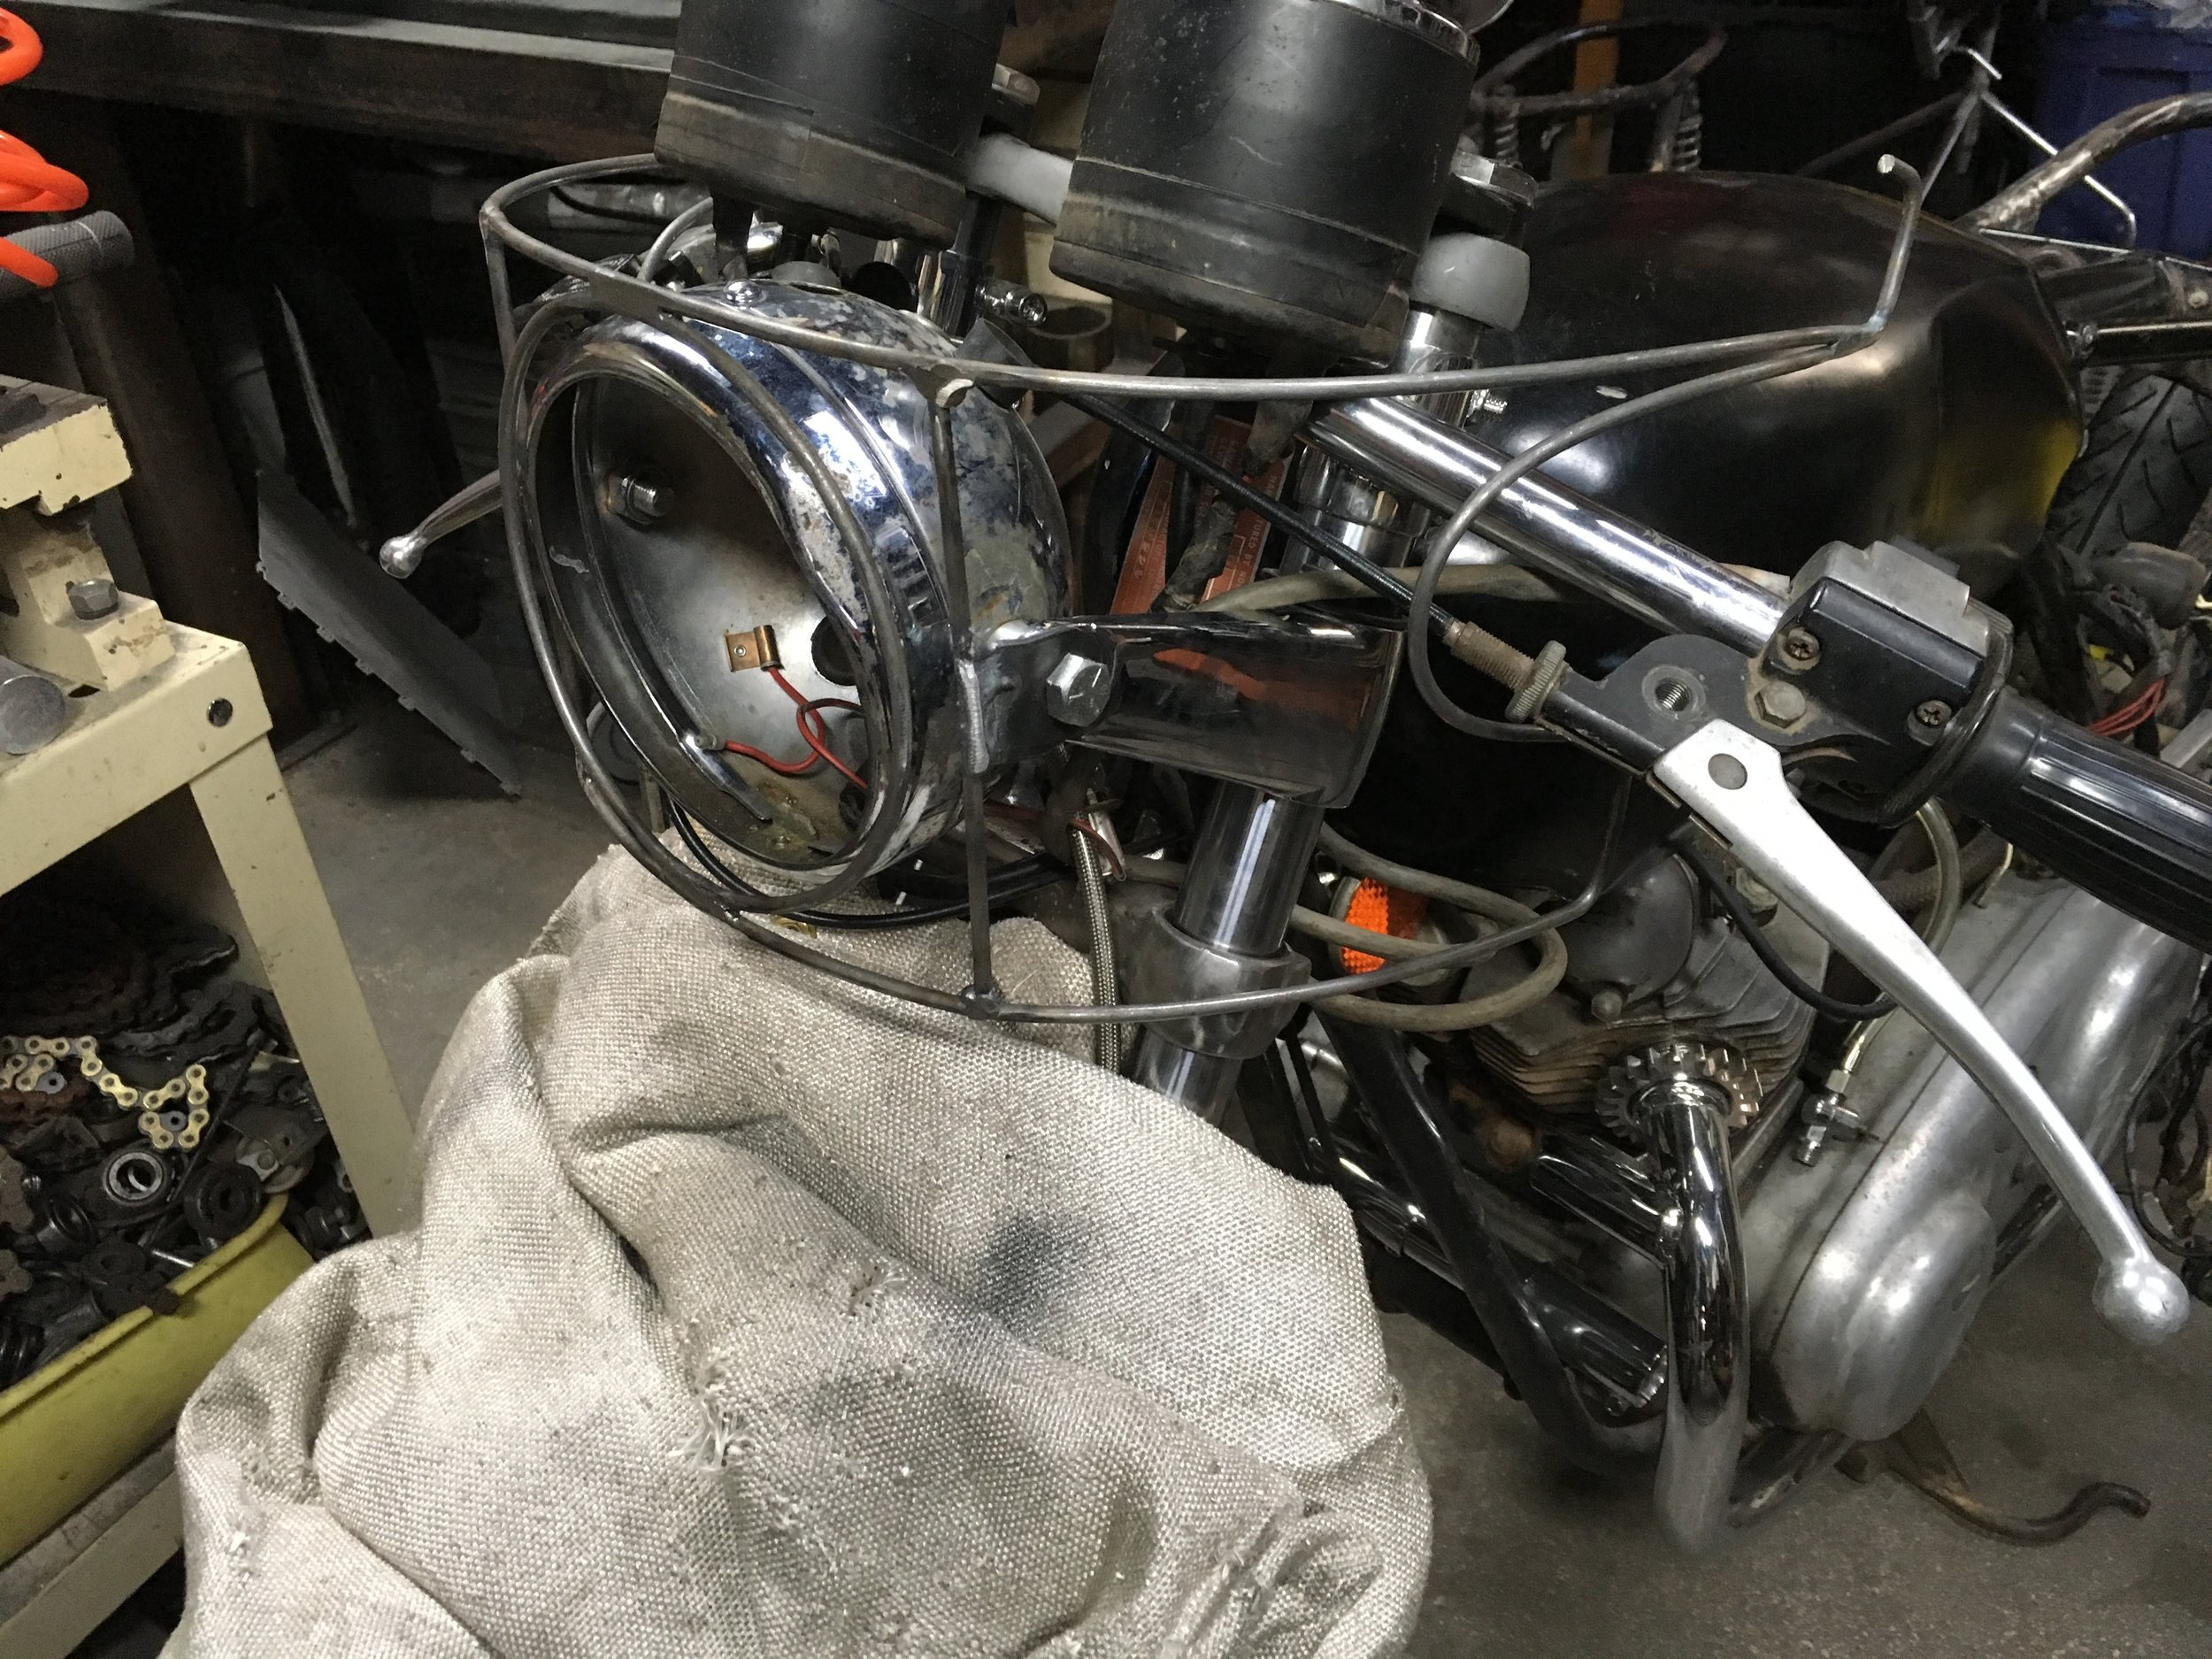 The wire form for the fairing is being worked out here. There is a little dance you have to do between the gauges, headlight, forks, bars, and controls…and it should look good too, by the way.